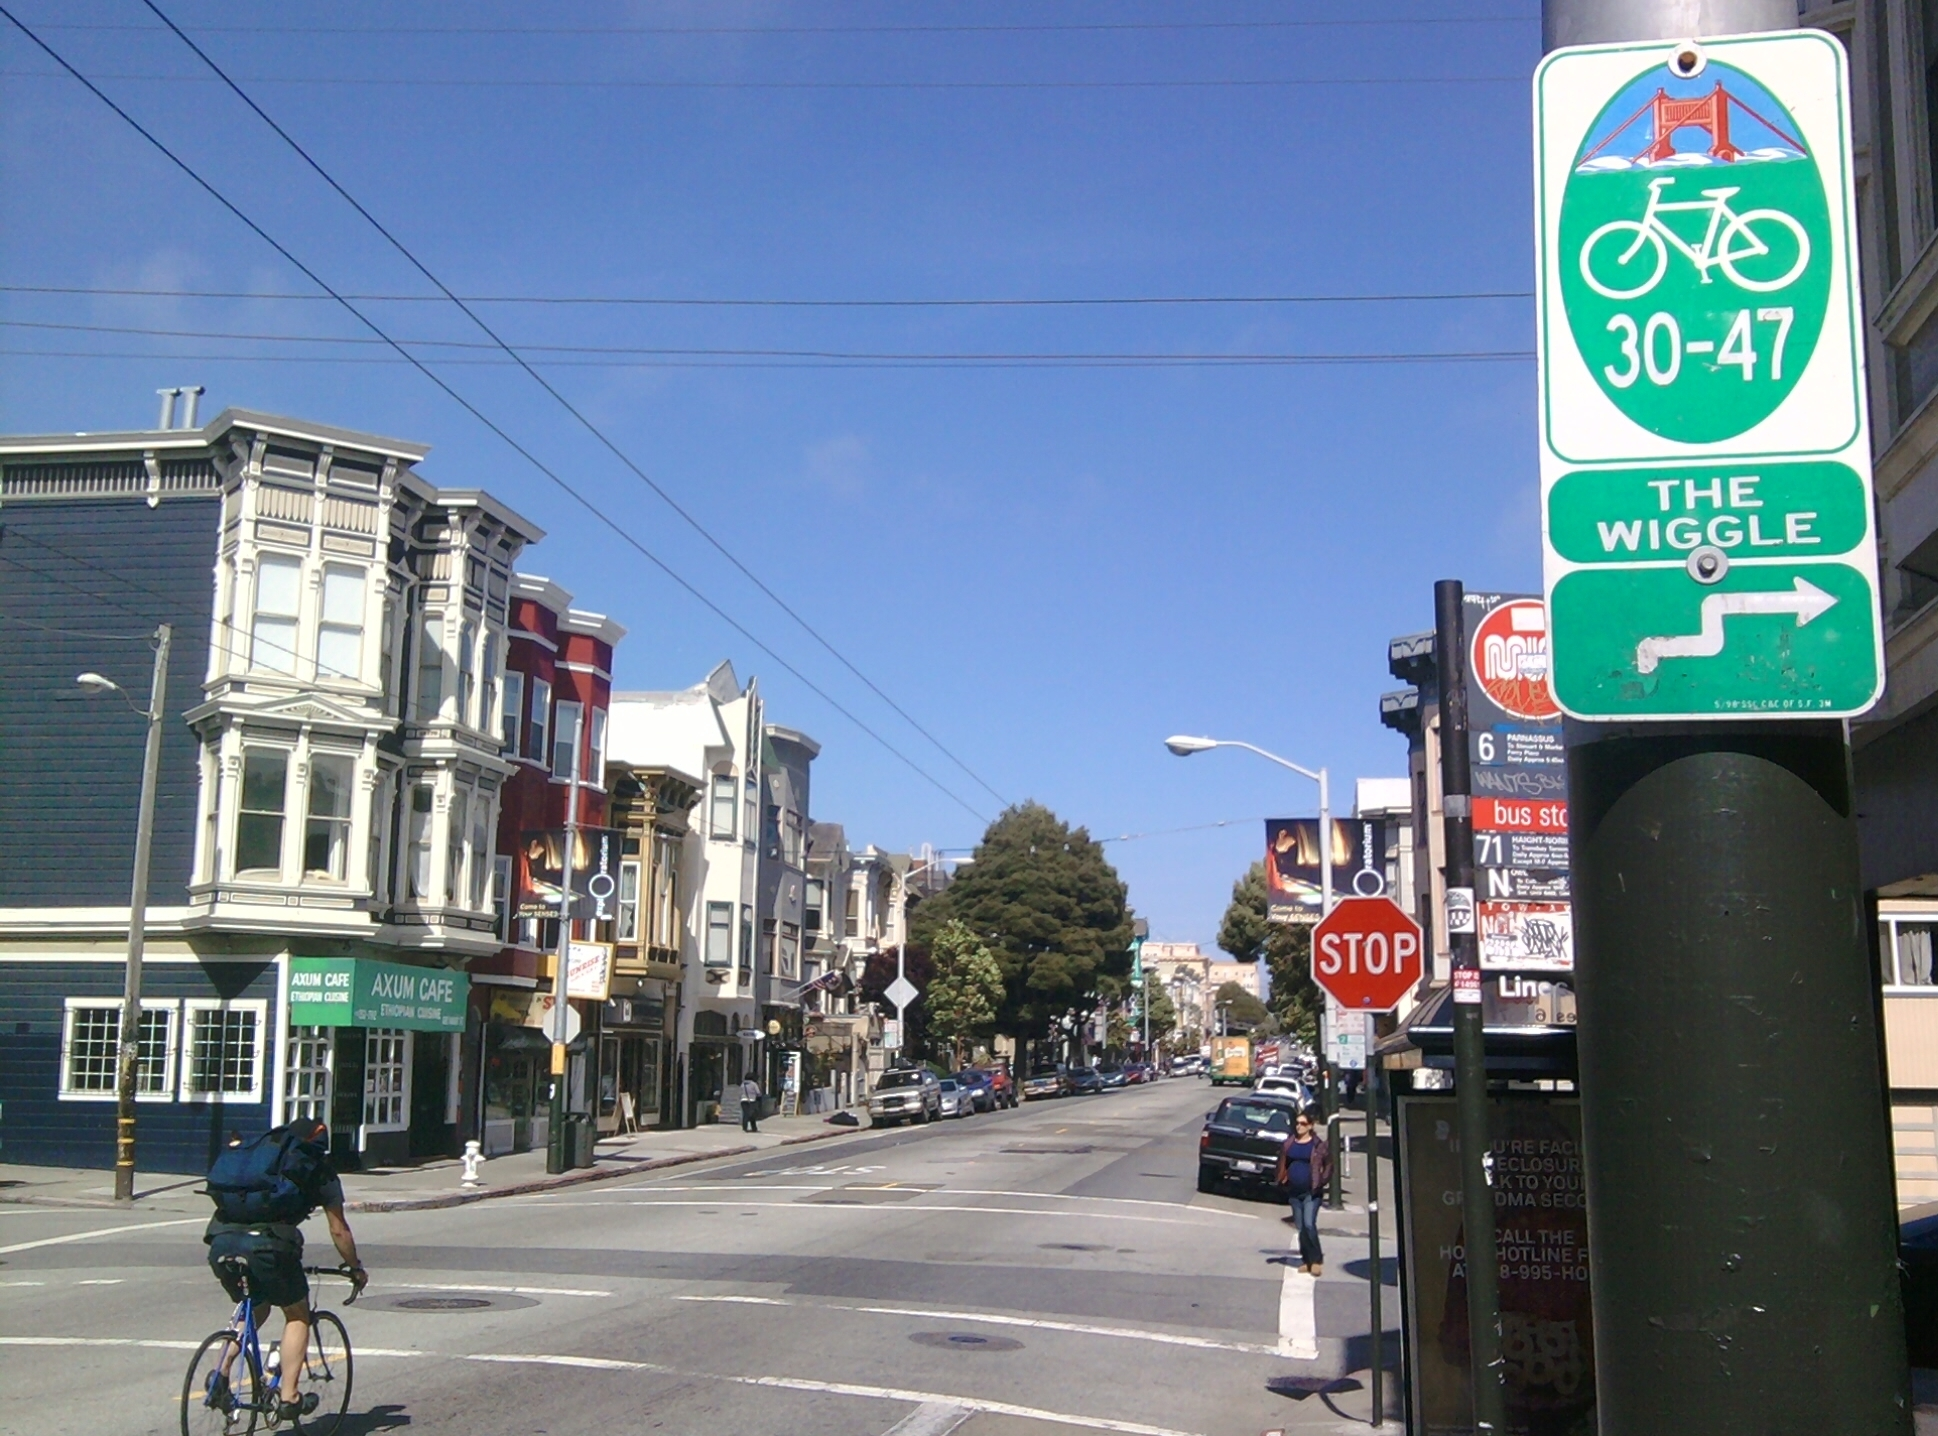 Haight Ashbury is one of the neighborhoods served by the Wiggle, a one-mile, flat bicycle route that runs from Market Street to Golden Gate Park.